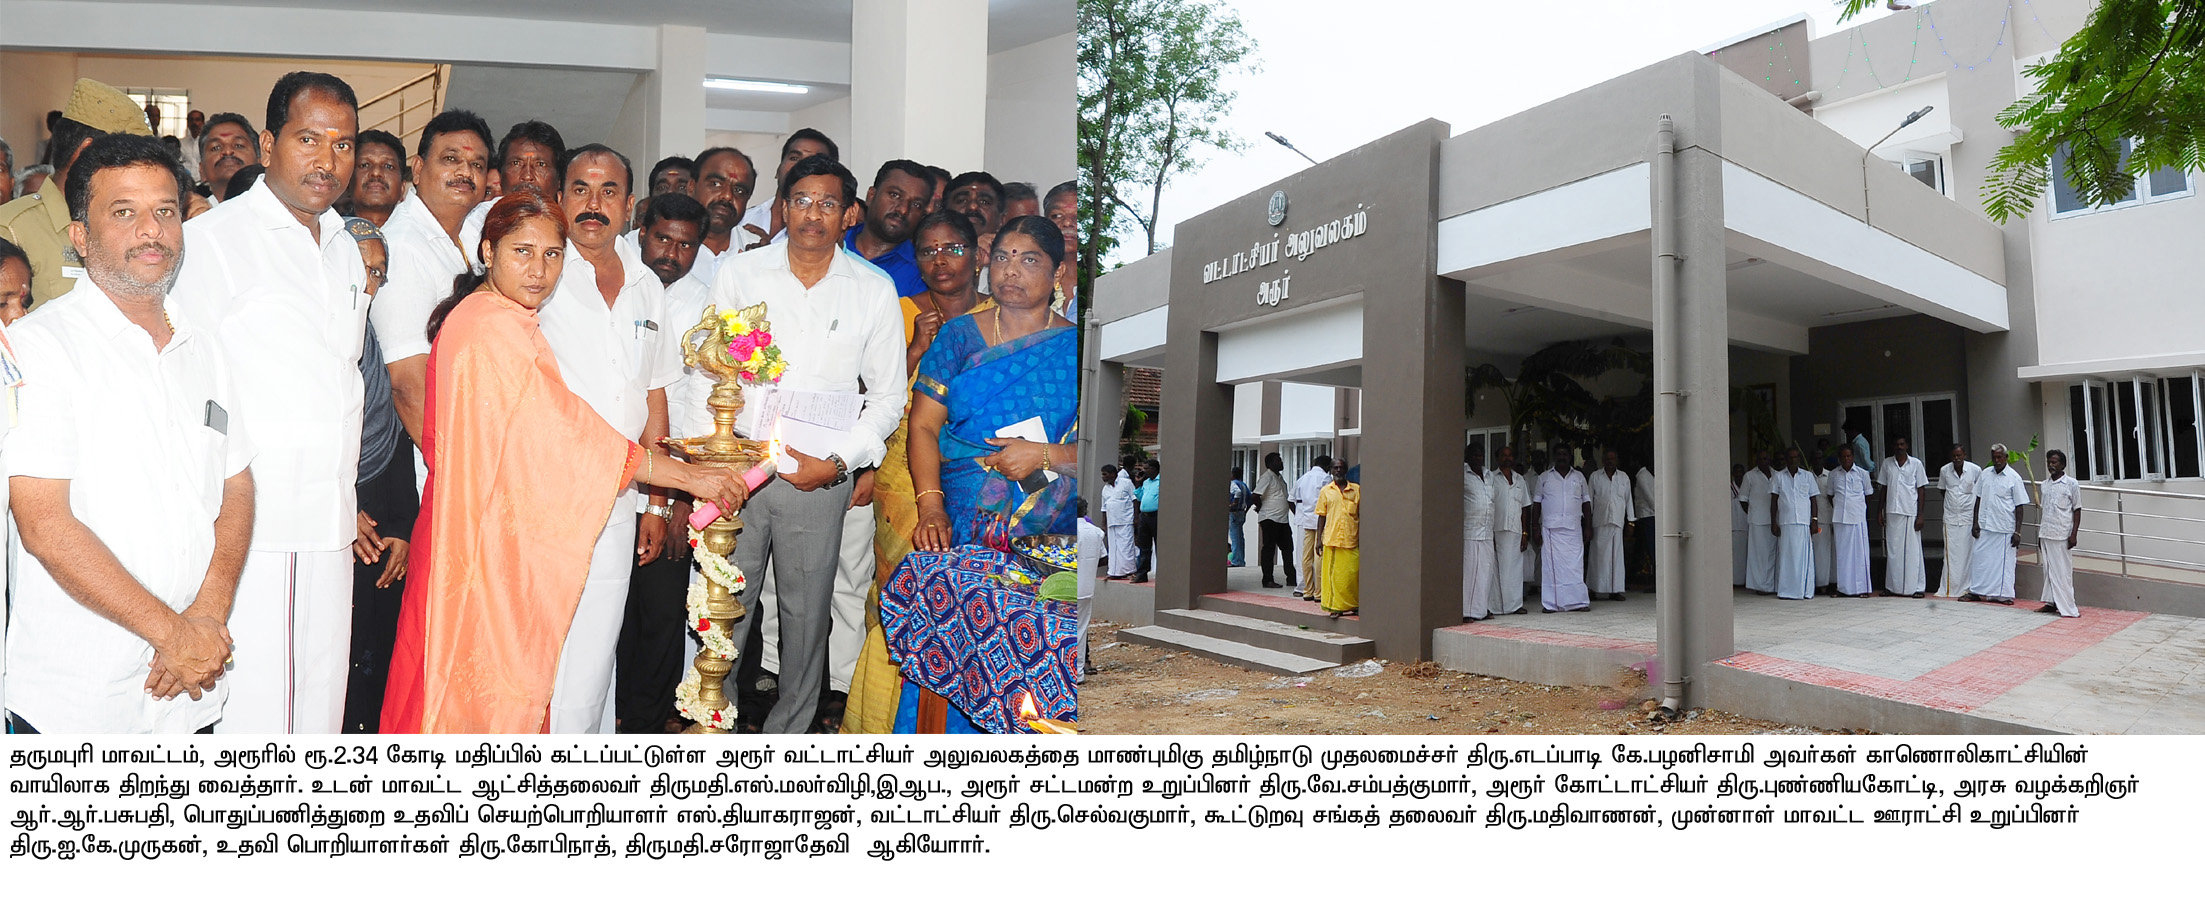 Honorable CM Inaugurate a New Harur Taluk Office building through Video Conferencing